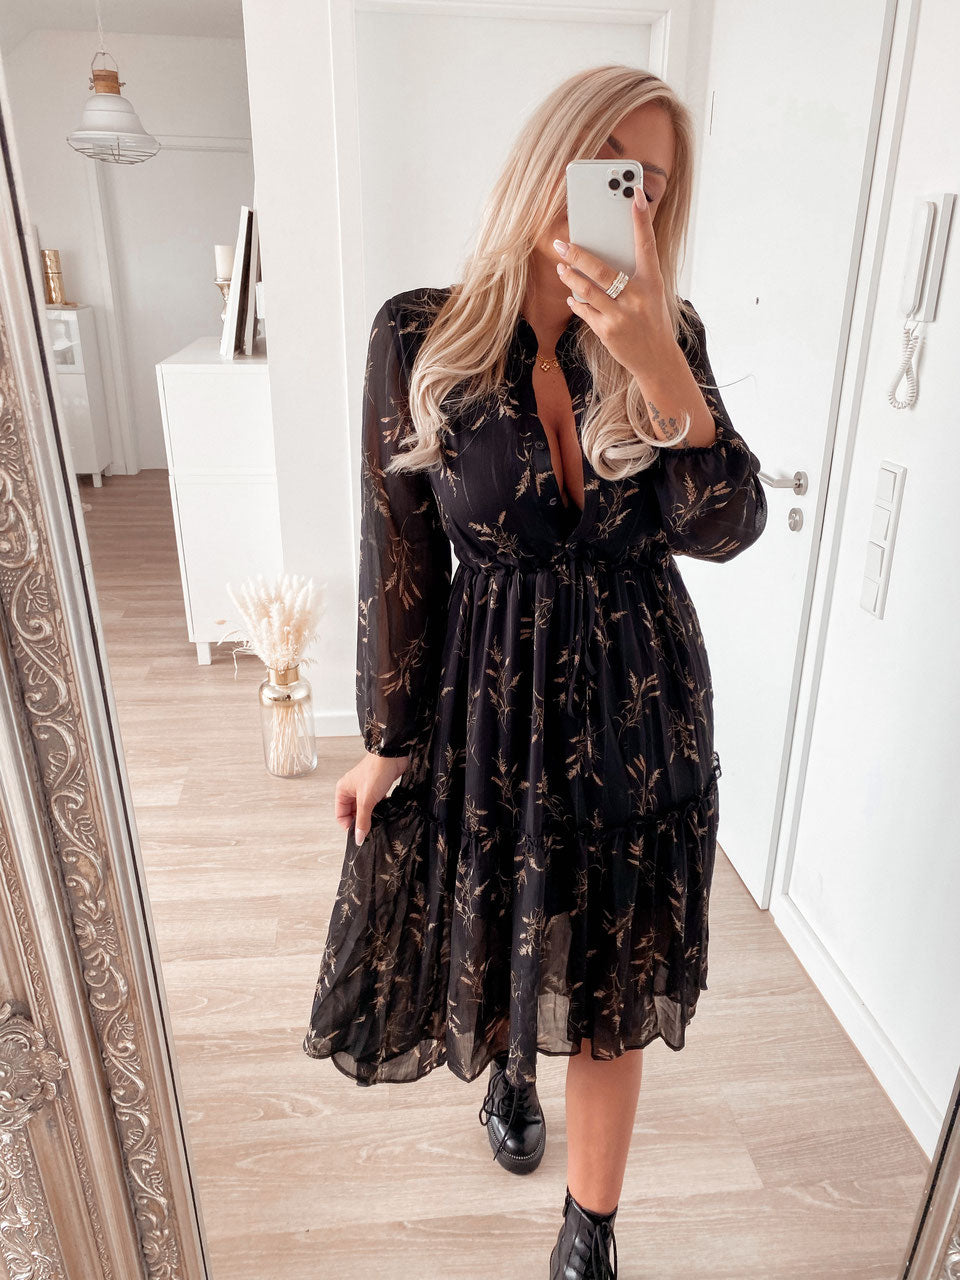 dress 'in love with autumn'